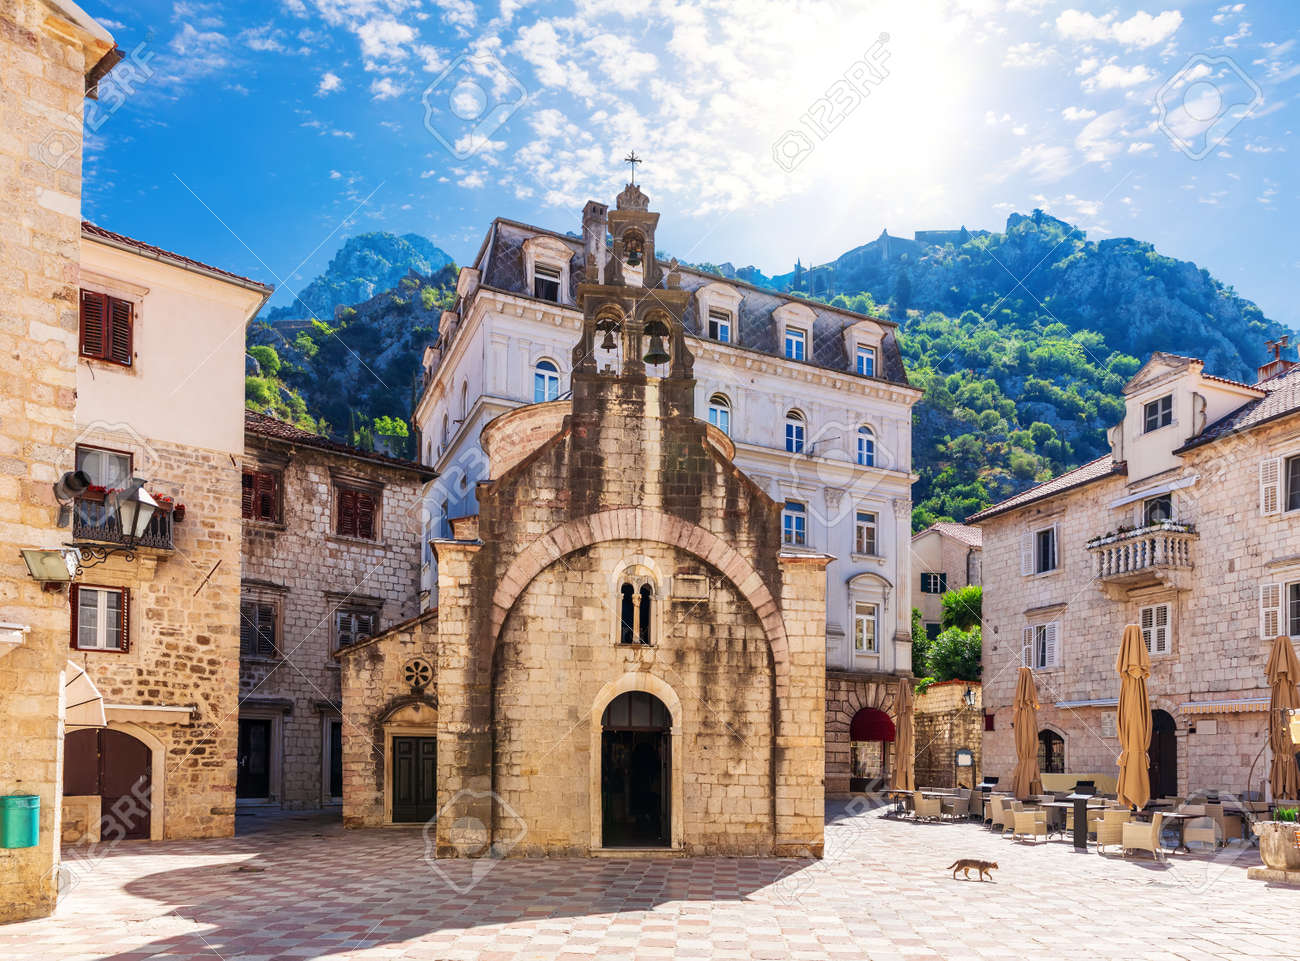 Saint Michael Church in the Old Town, Kotor, Montenegro. - 159181016